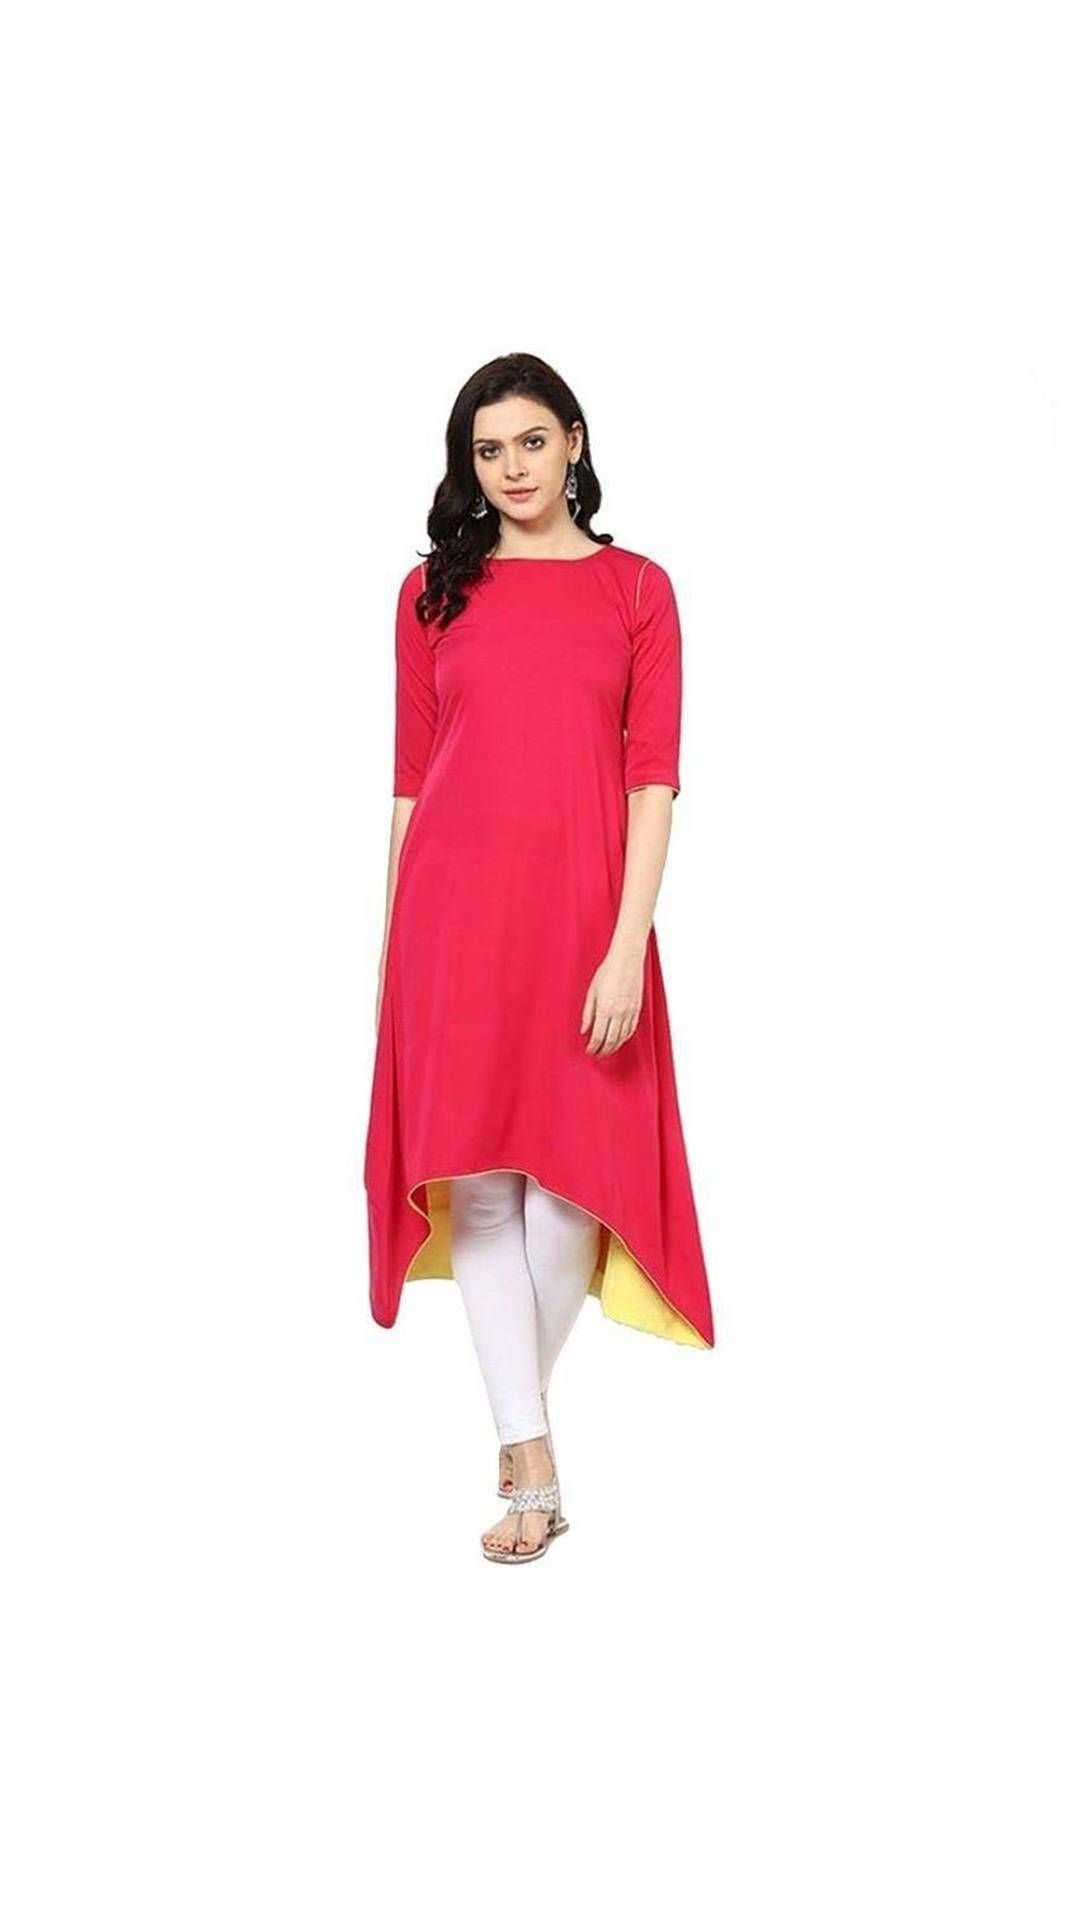 5c9df0716a Buy Pink Color Plain Rayon Long Kurti Online at Low Prices in India -  Paytm.com Saiveera Fashion is Popular brand in Women Clothing in Surat.